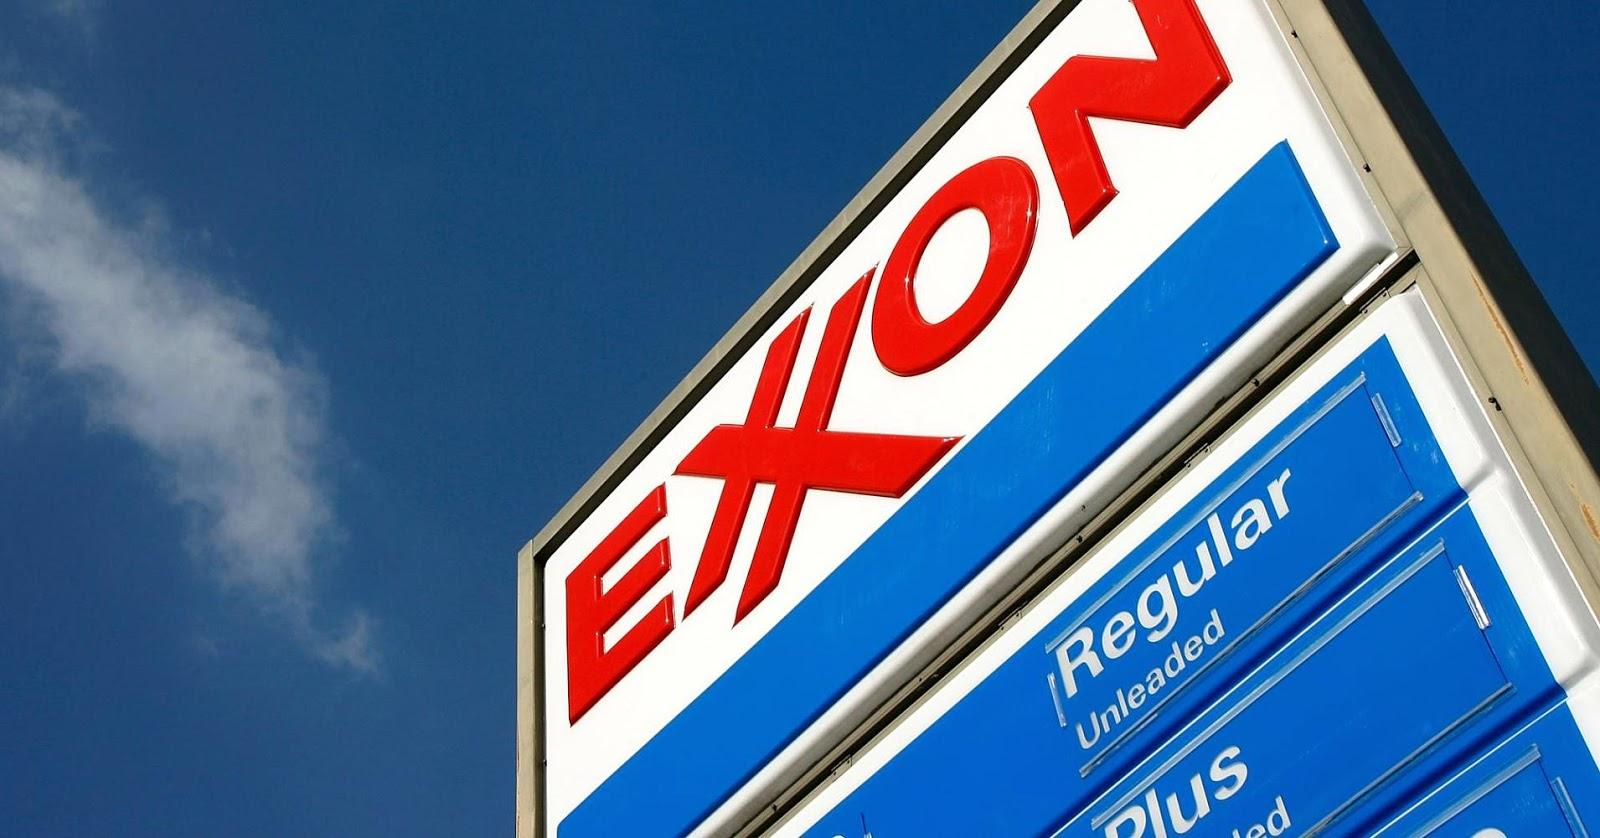 Exxon Quote Exxon Mobil Should You Worry About The Dividend  Exxon Mobil